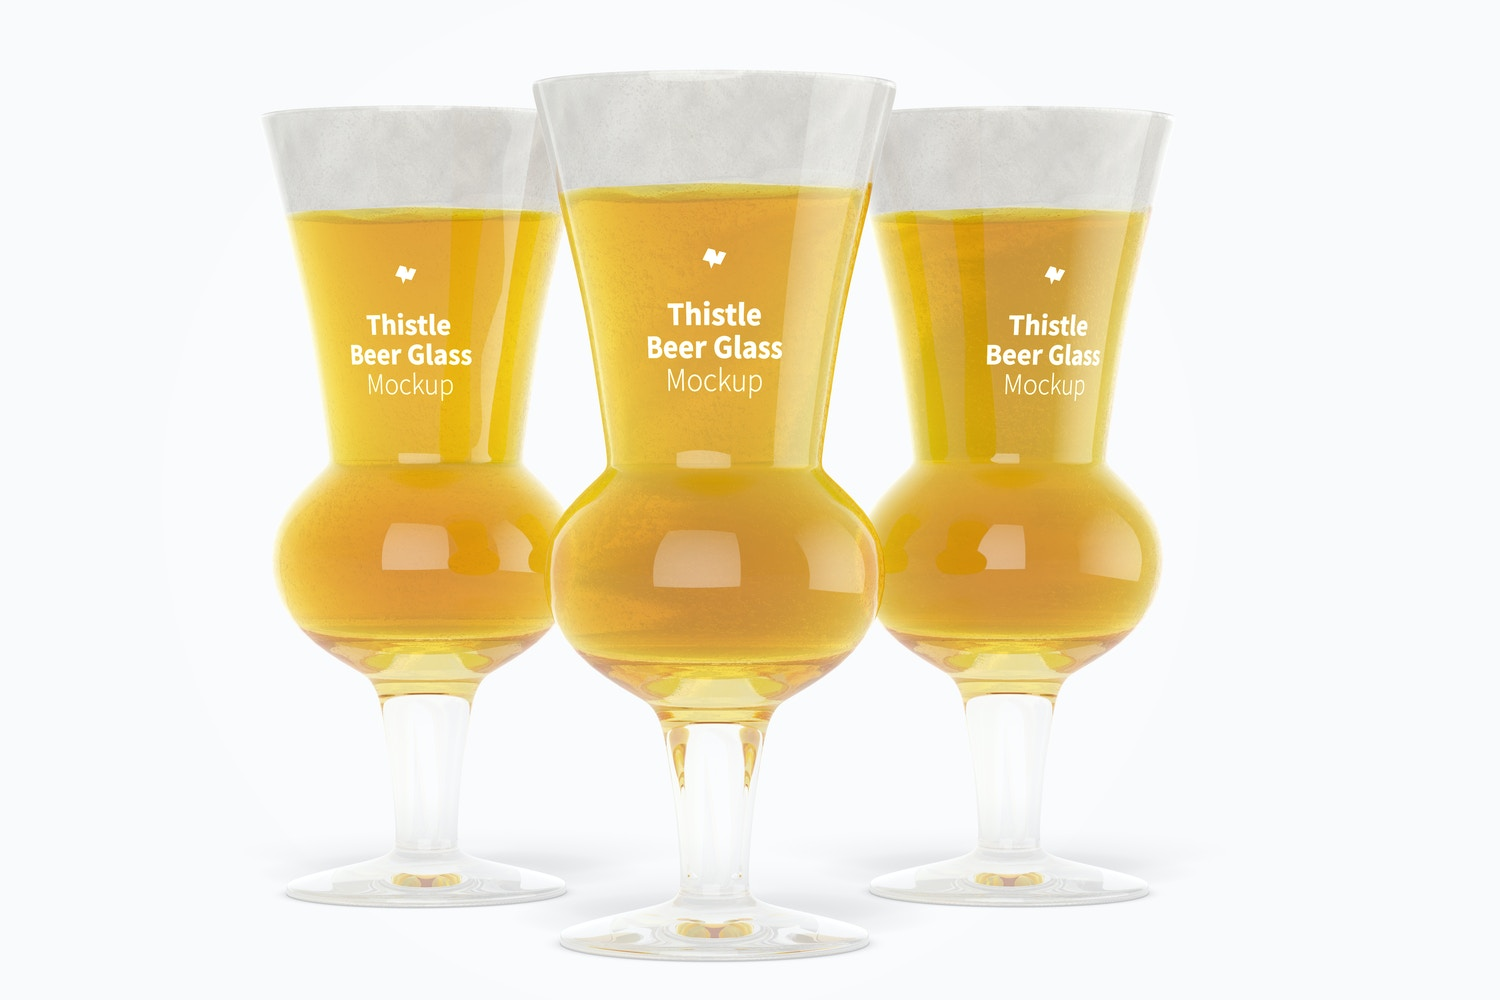 Thistle Beer Glasses Mockup, Front View